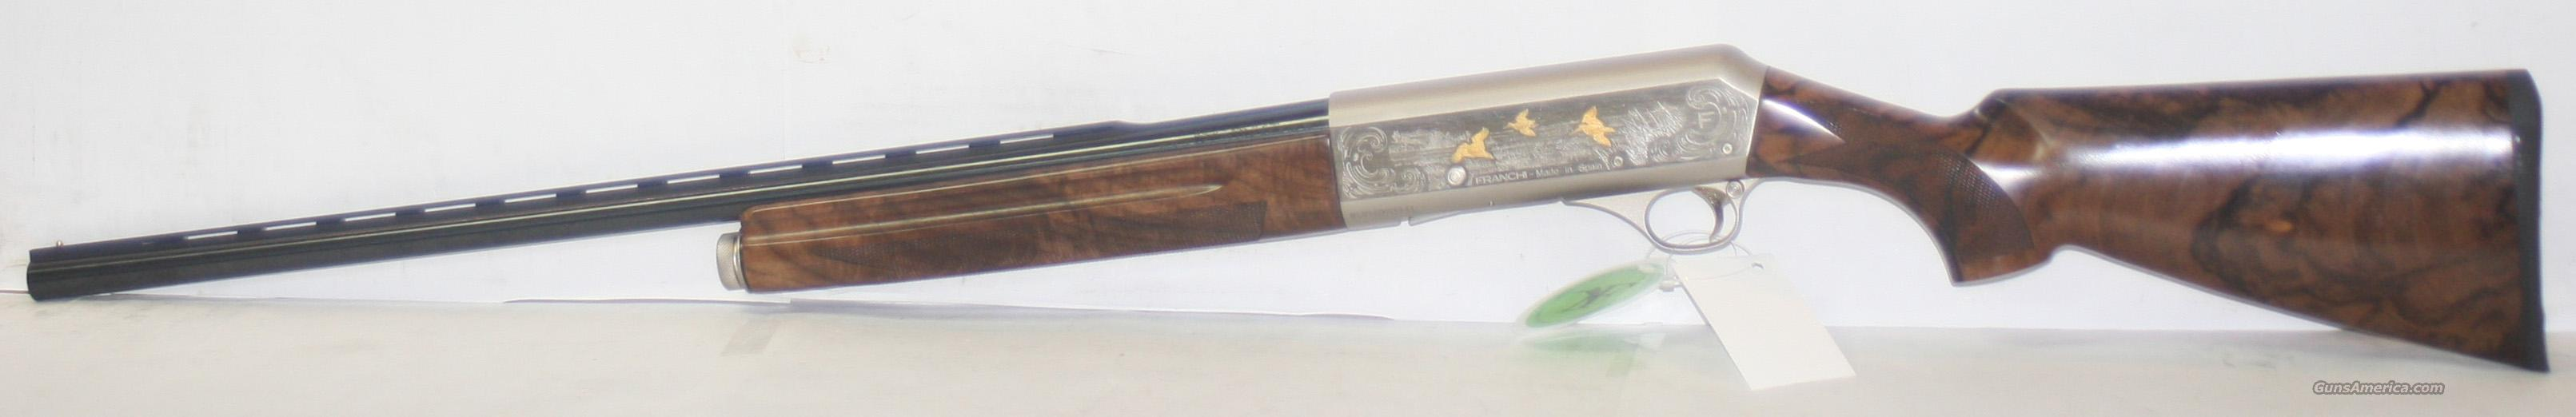 "FRANCHI WORLD CLASS FENICE AL 48 20 GAUGE 26"" NEW IN BOX  Guns > Shotguns > Franchi Shotguns > Auto/Pump > Hunting"